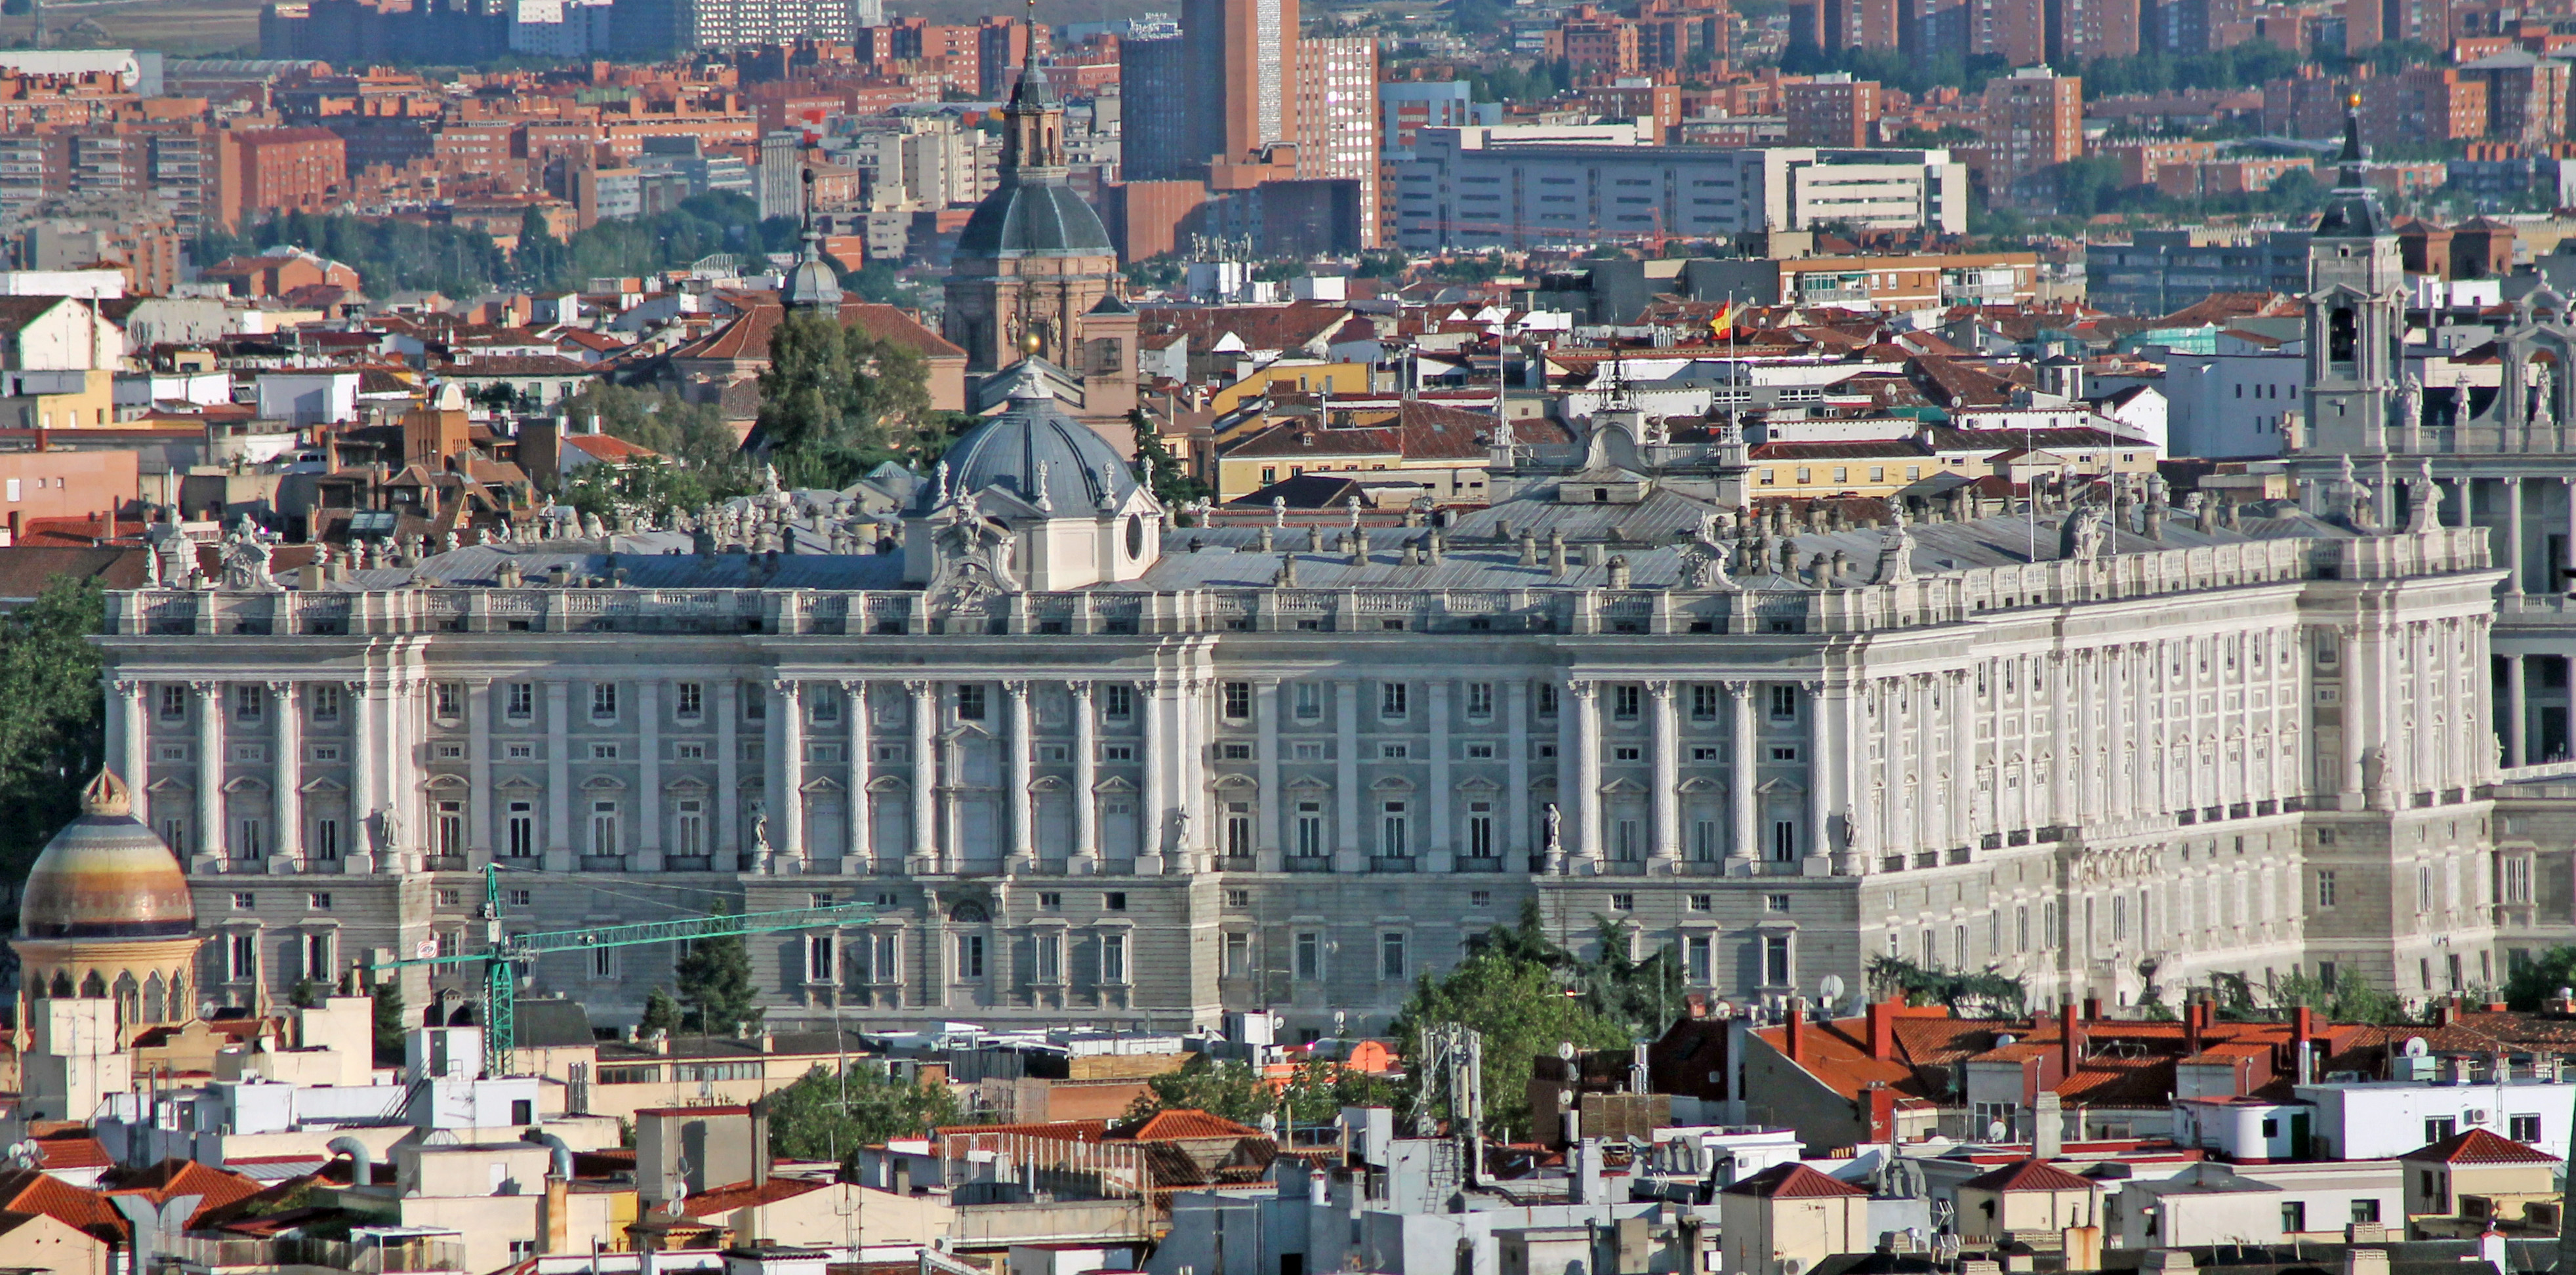 View of the ROYAL PALACE of MADRID (Spain) from Faro de Moncloa.